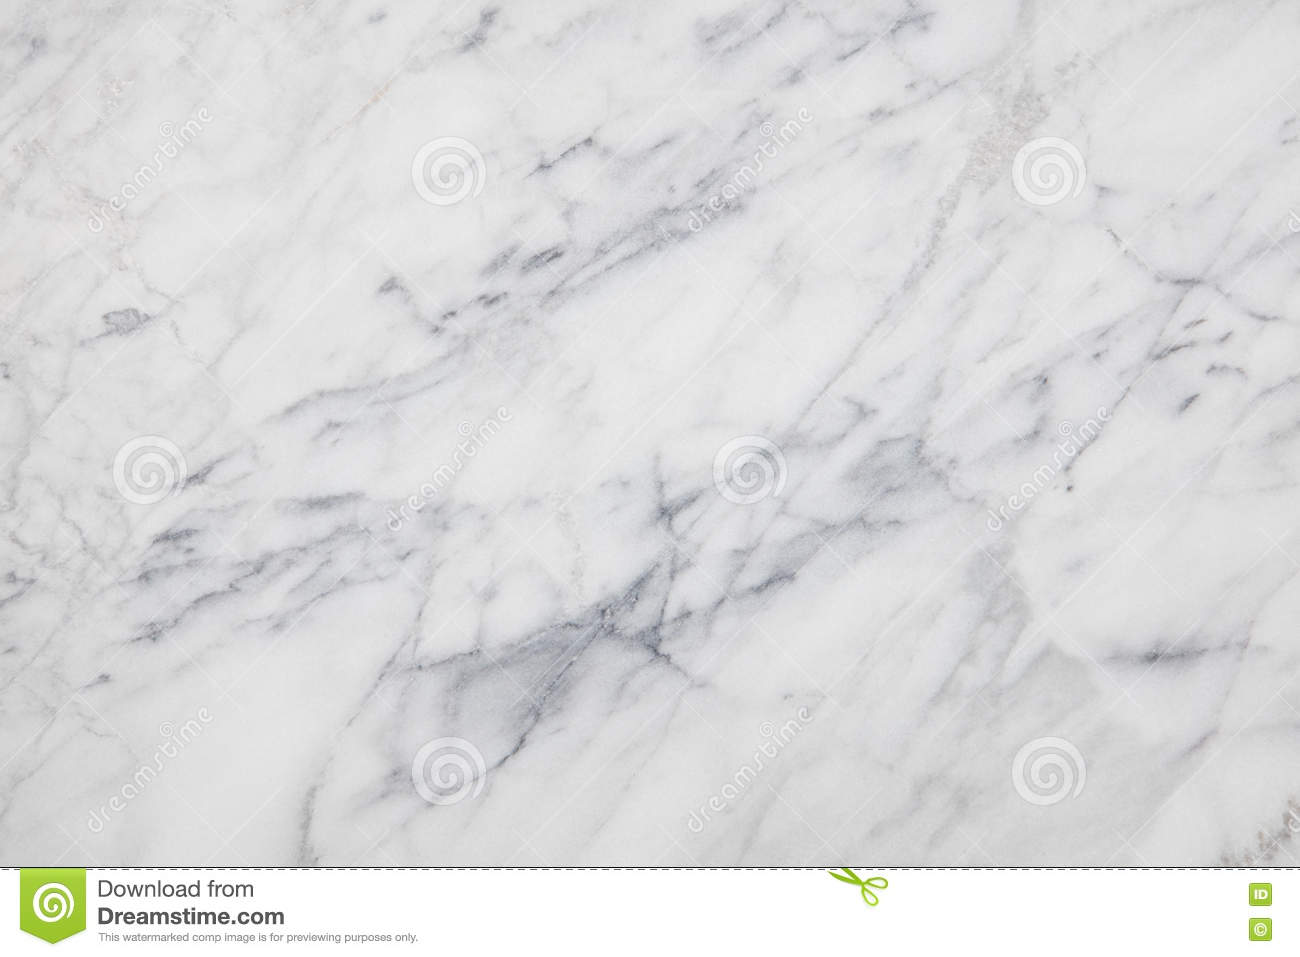 Natural marble stone background pattern with high resolution. Top view Copy space.